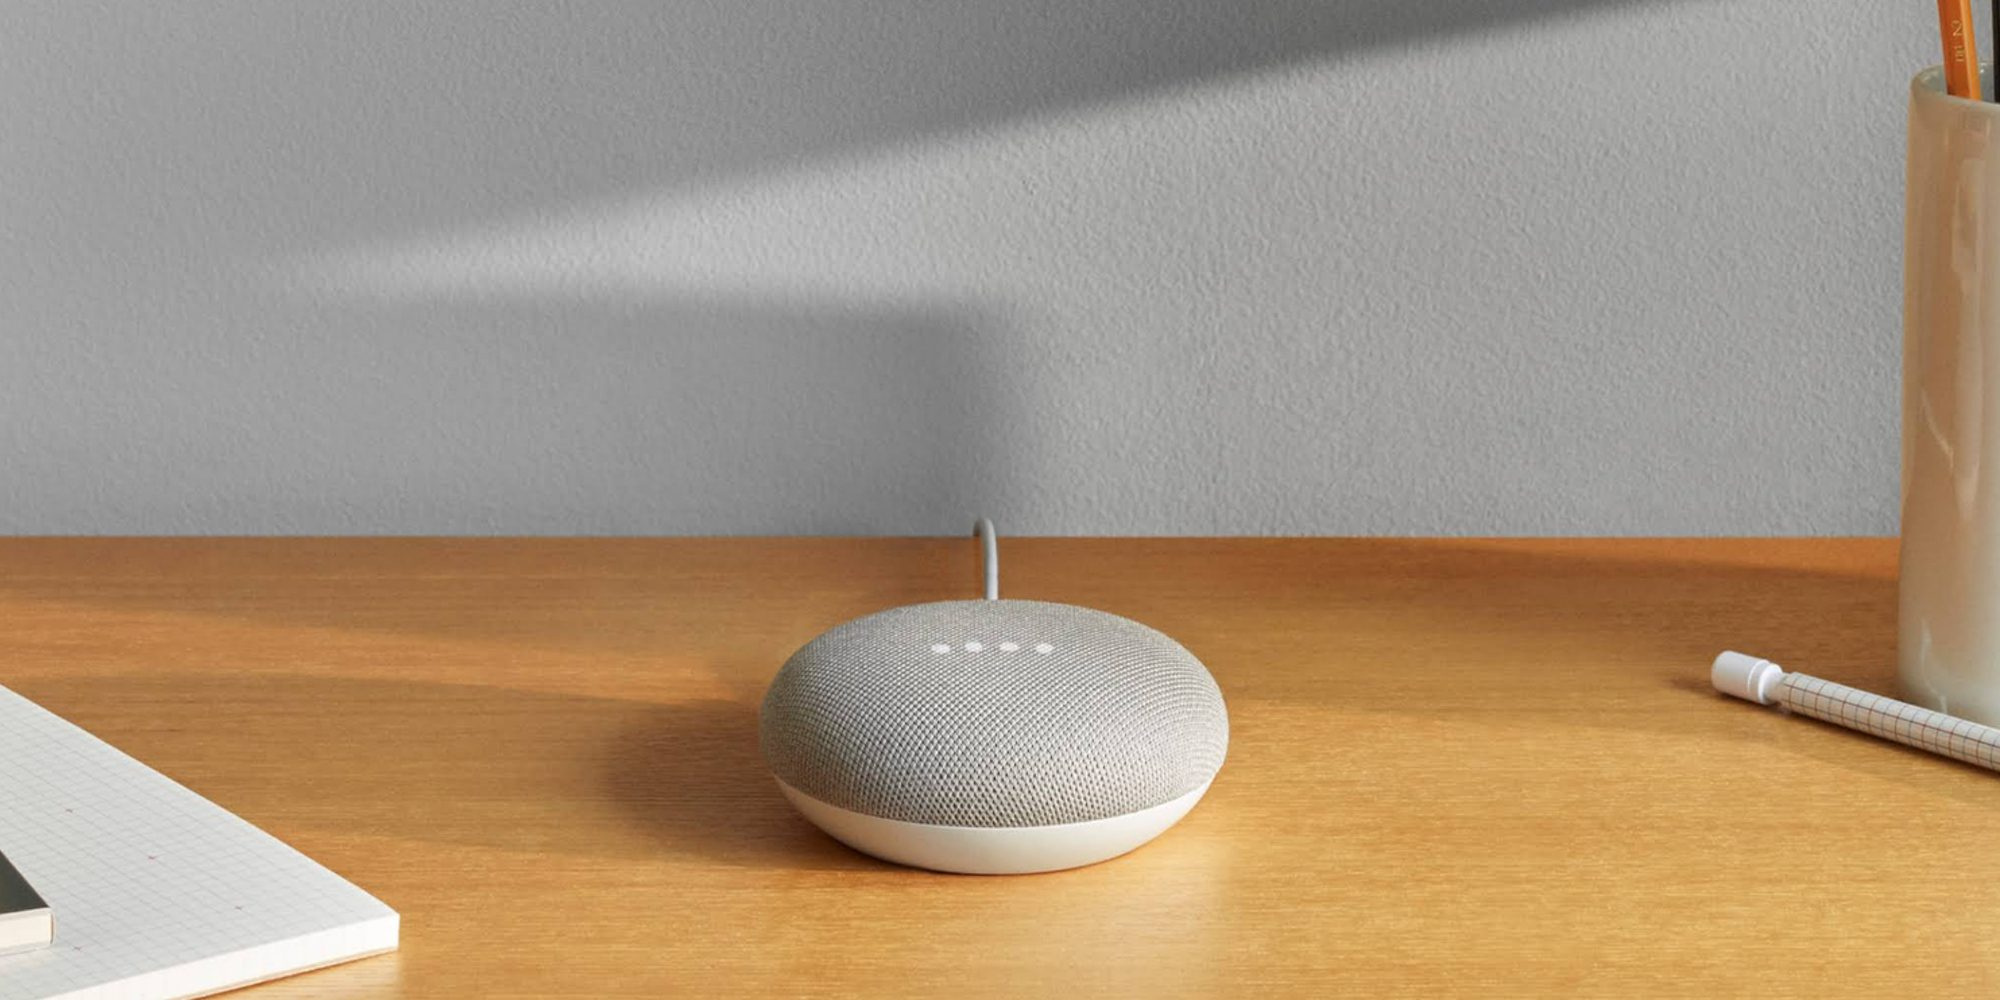 digital wellbeing apparently starting to roll out to google home users